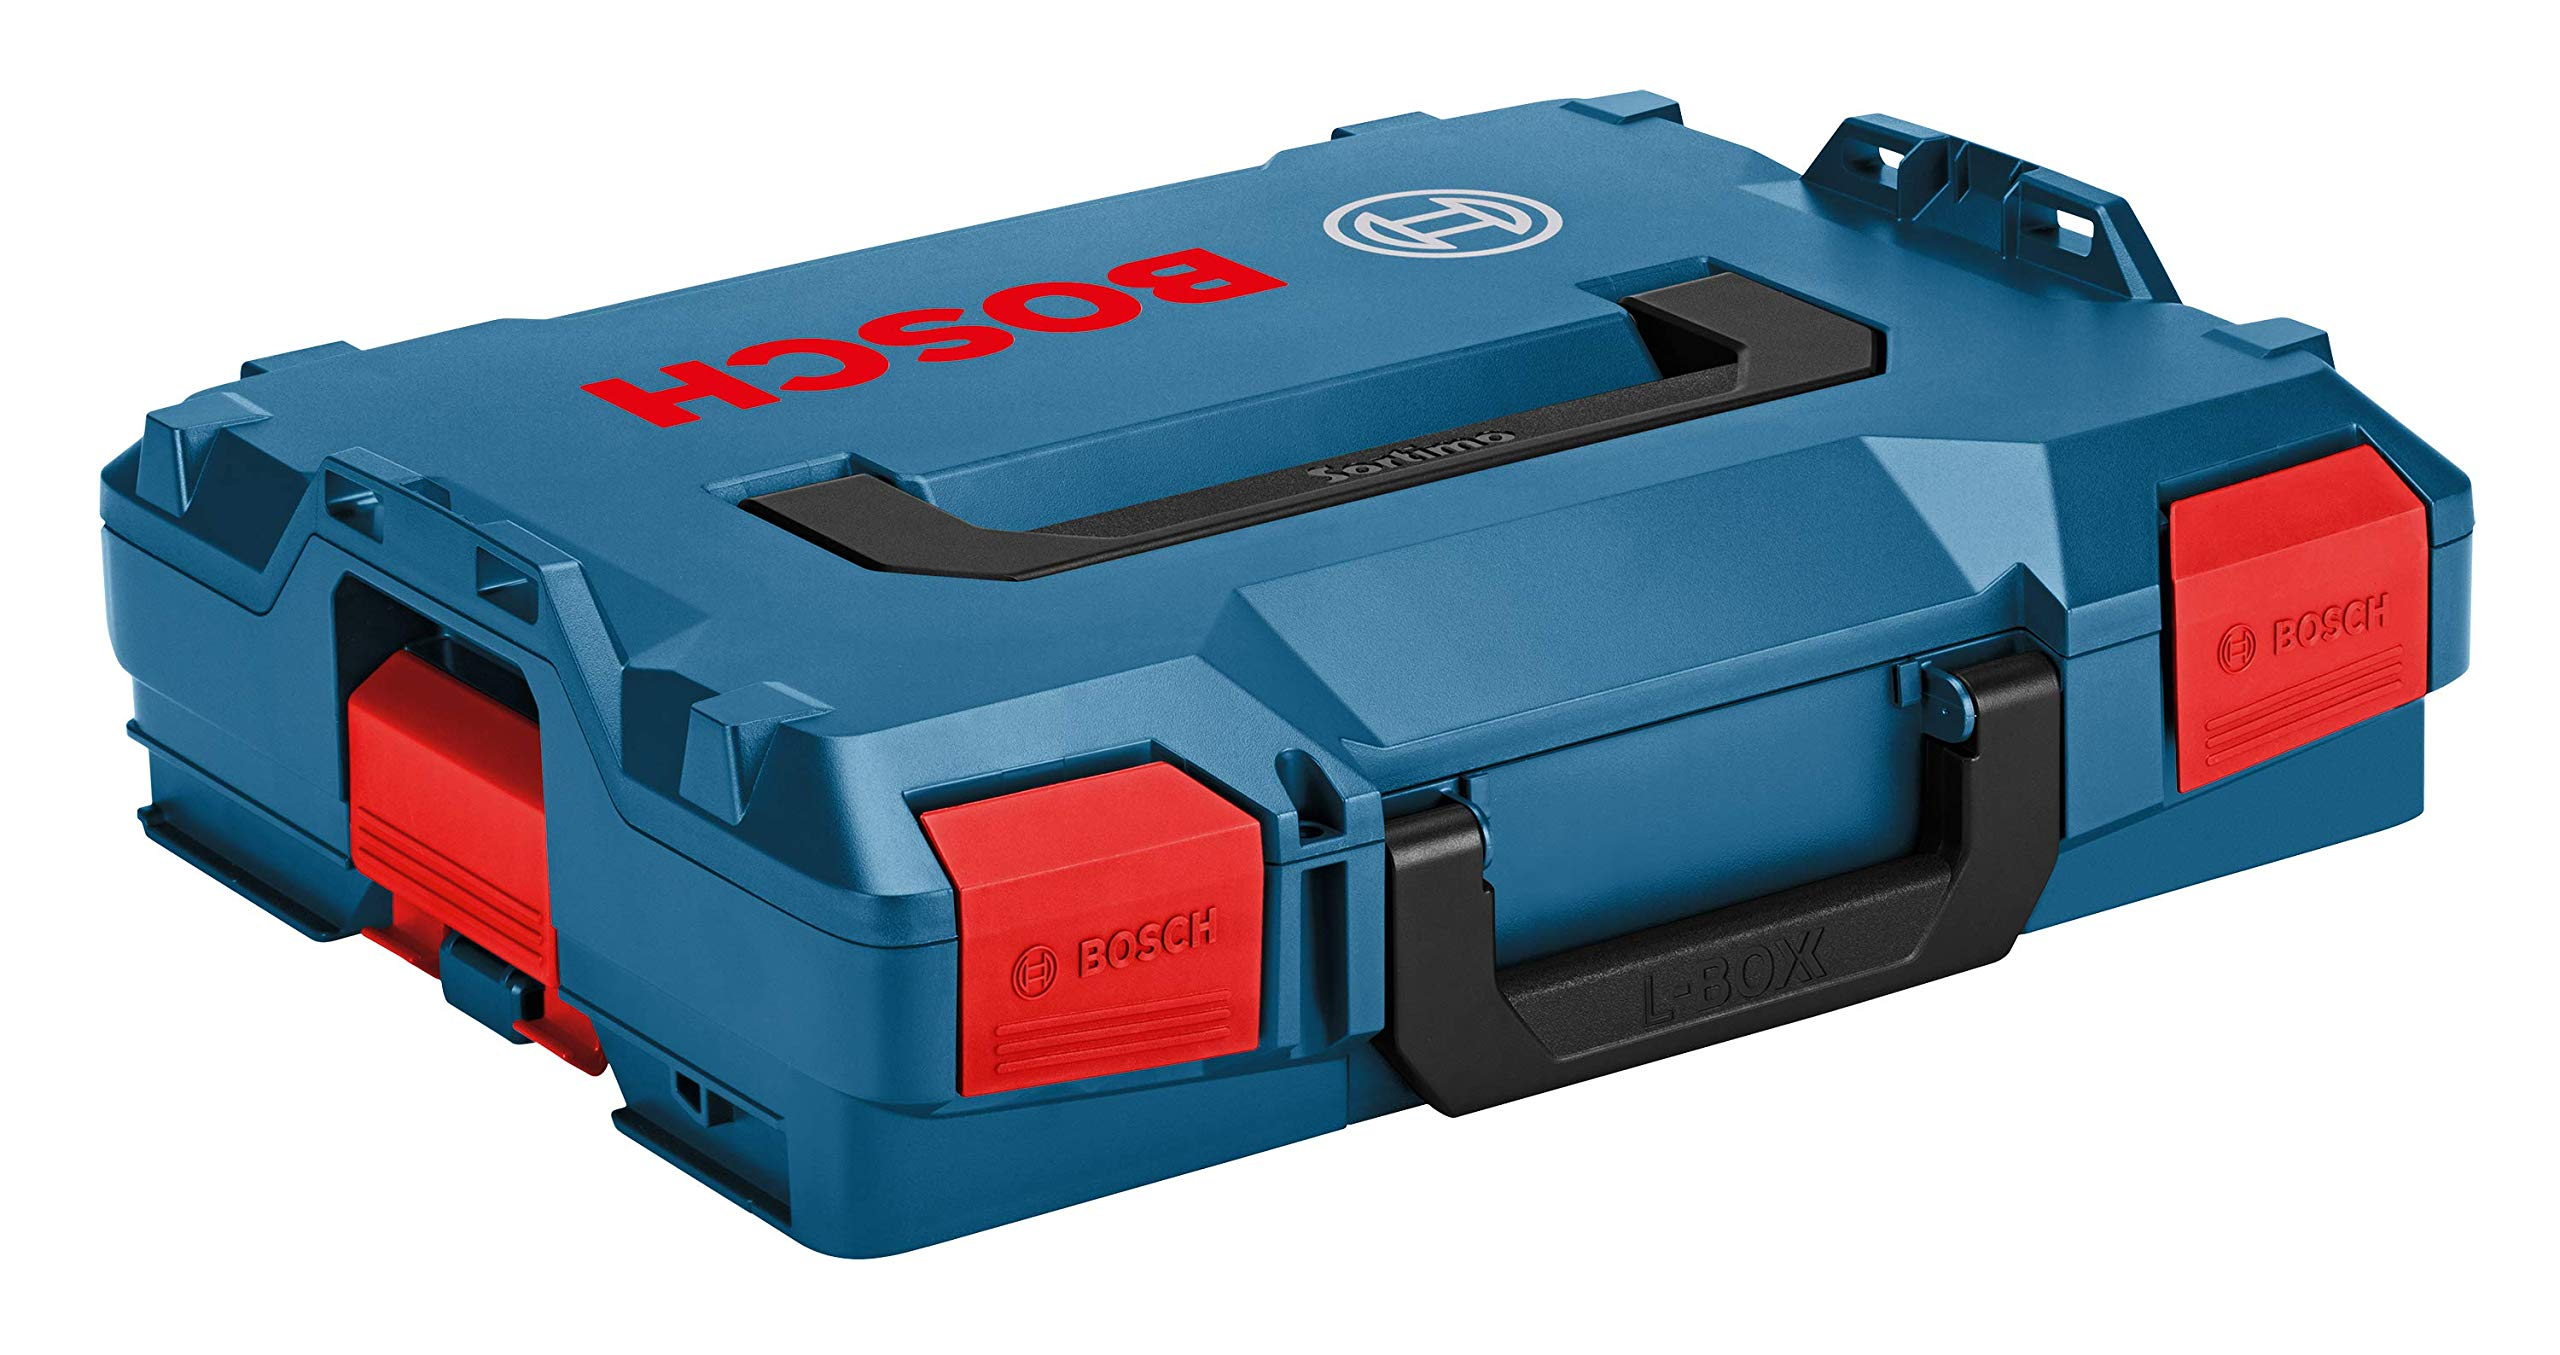 Bosch L-BOXX-1 4.5 In. x 14 In. x 17.5 In. Stackable Tool Storage Case by Bosch (Image #1)